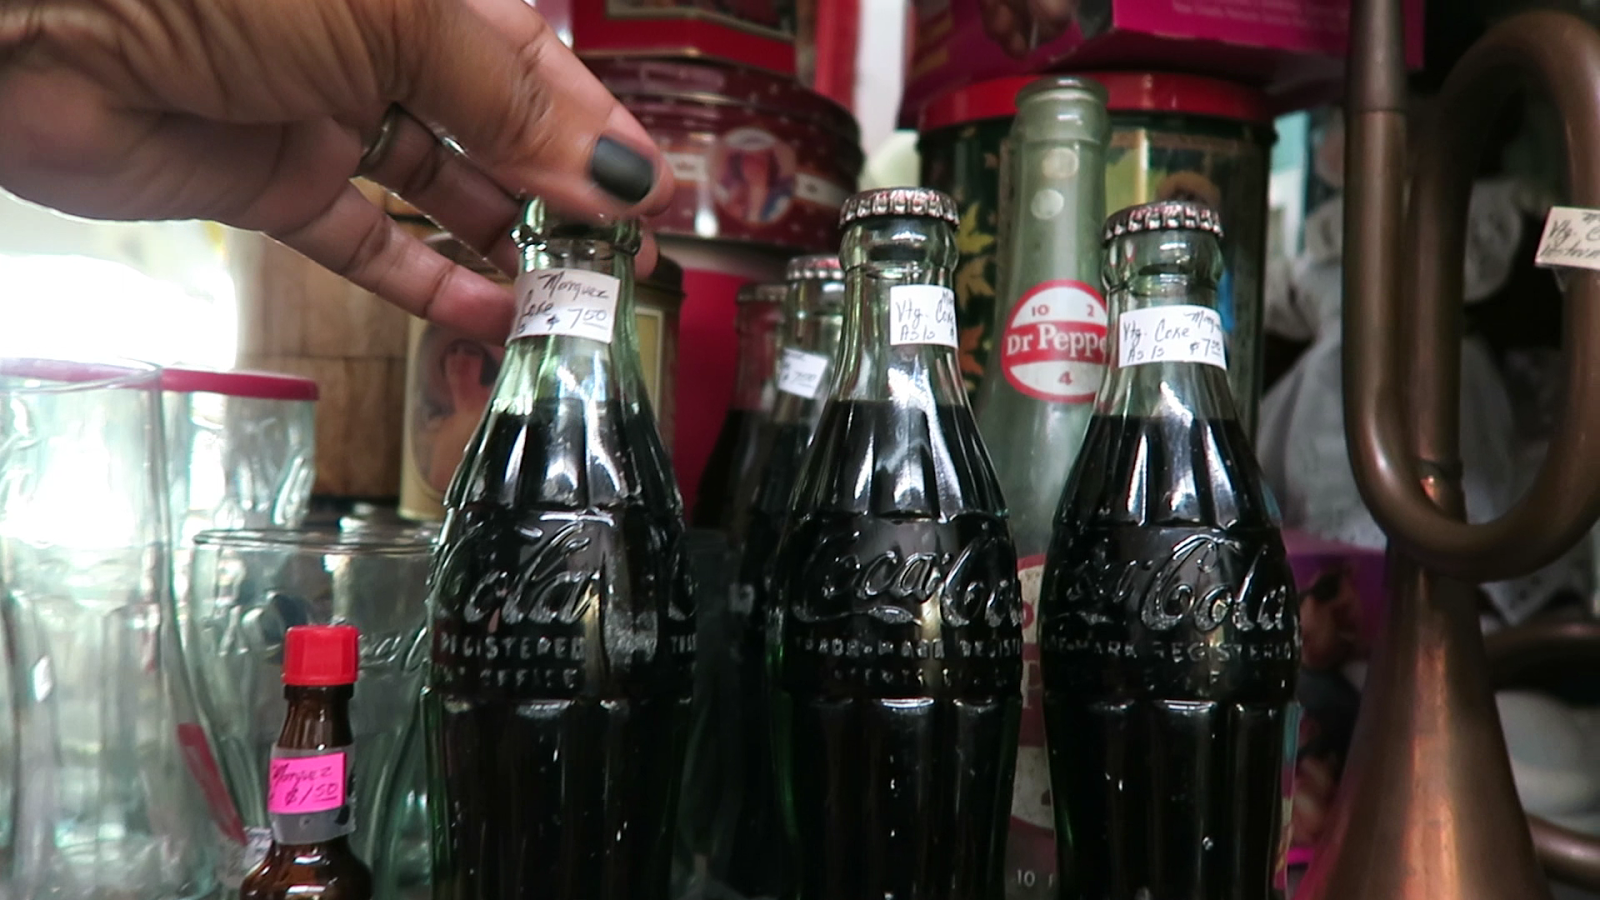 Image: Coke bottles at the thrift store. Taken by Tangie Bell and shared on Being Forty Something